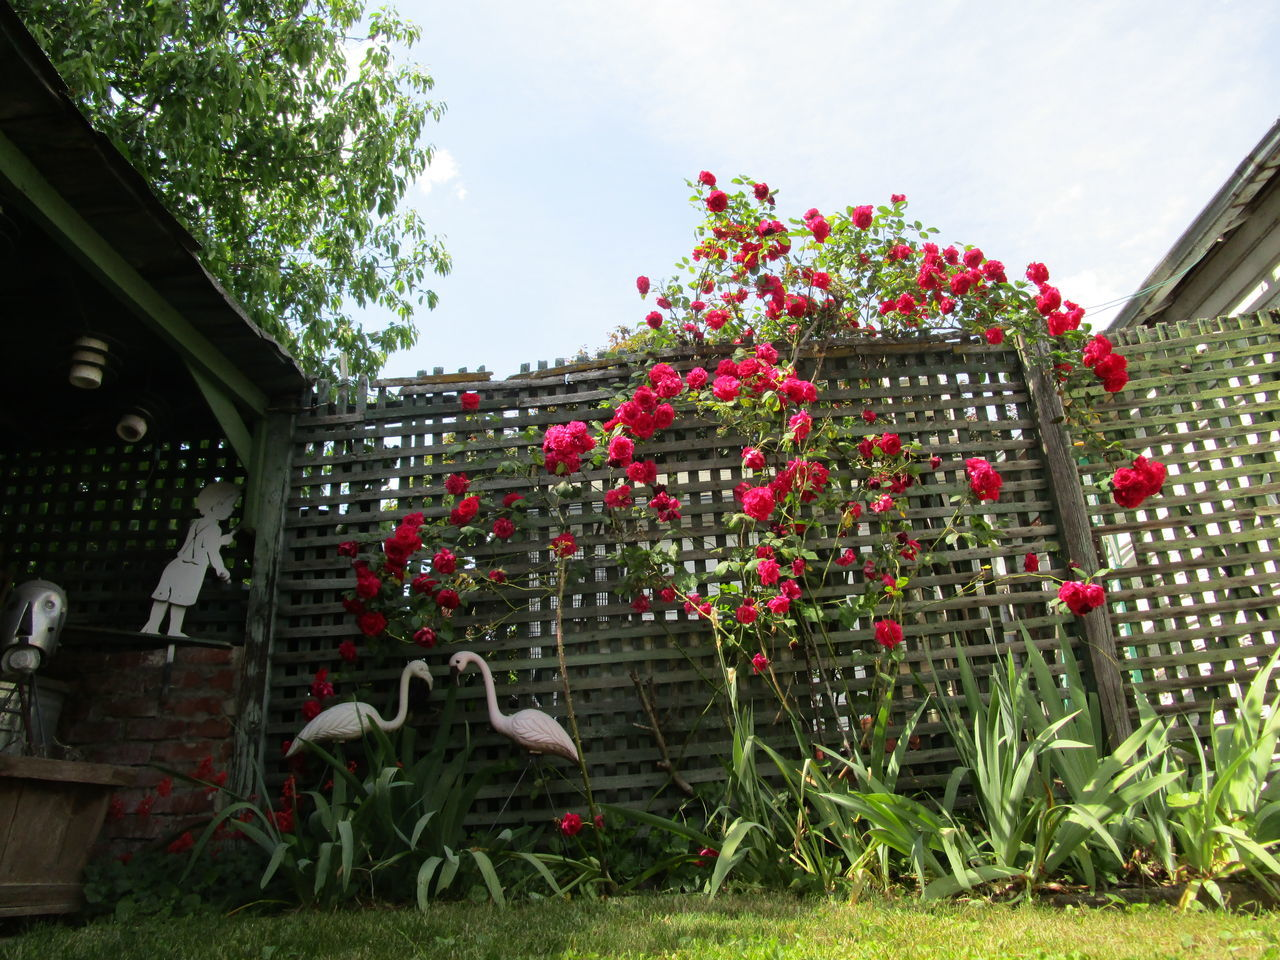 Built Structure Day Lath Fence No People Outdoors Red Roses Yard Flamingos